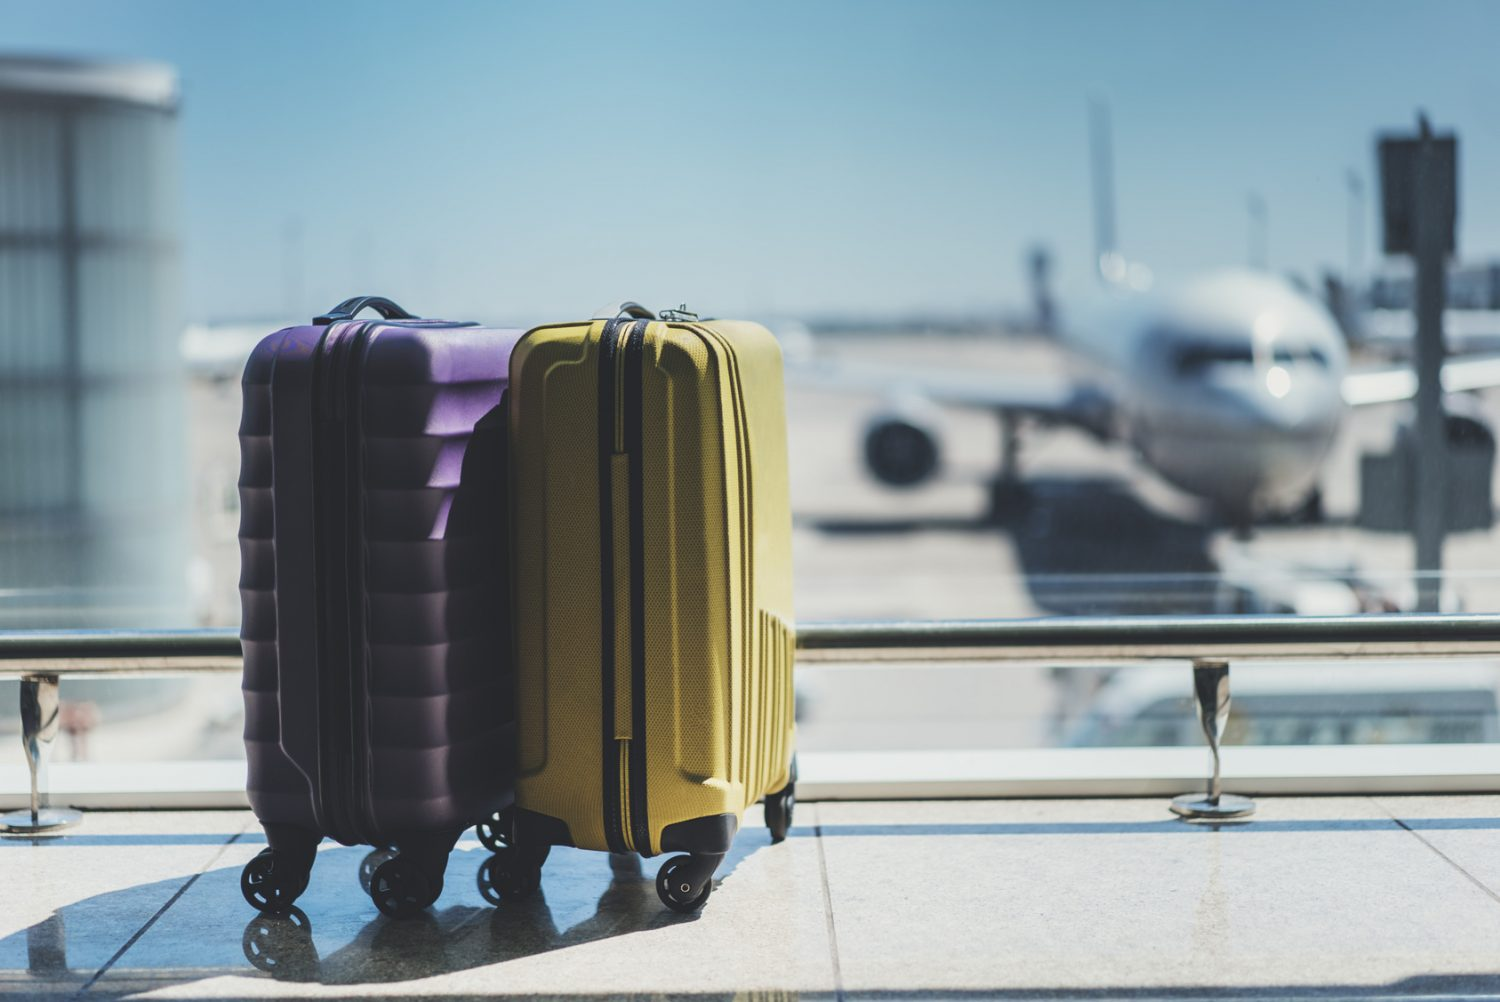 Airportr luggage delivery service transforms airport commutes